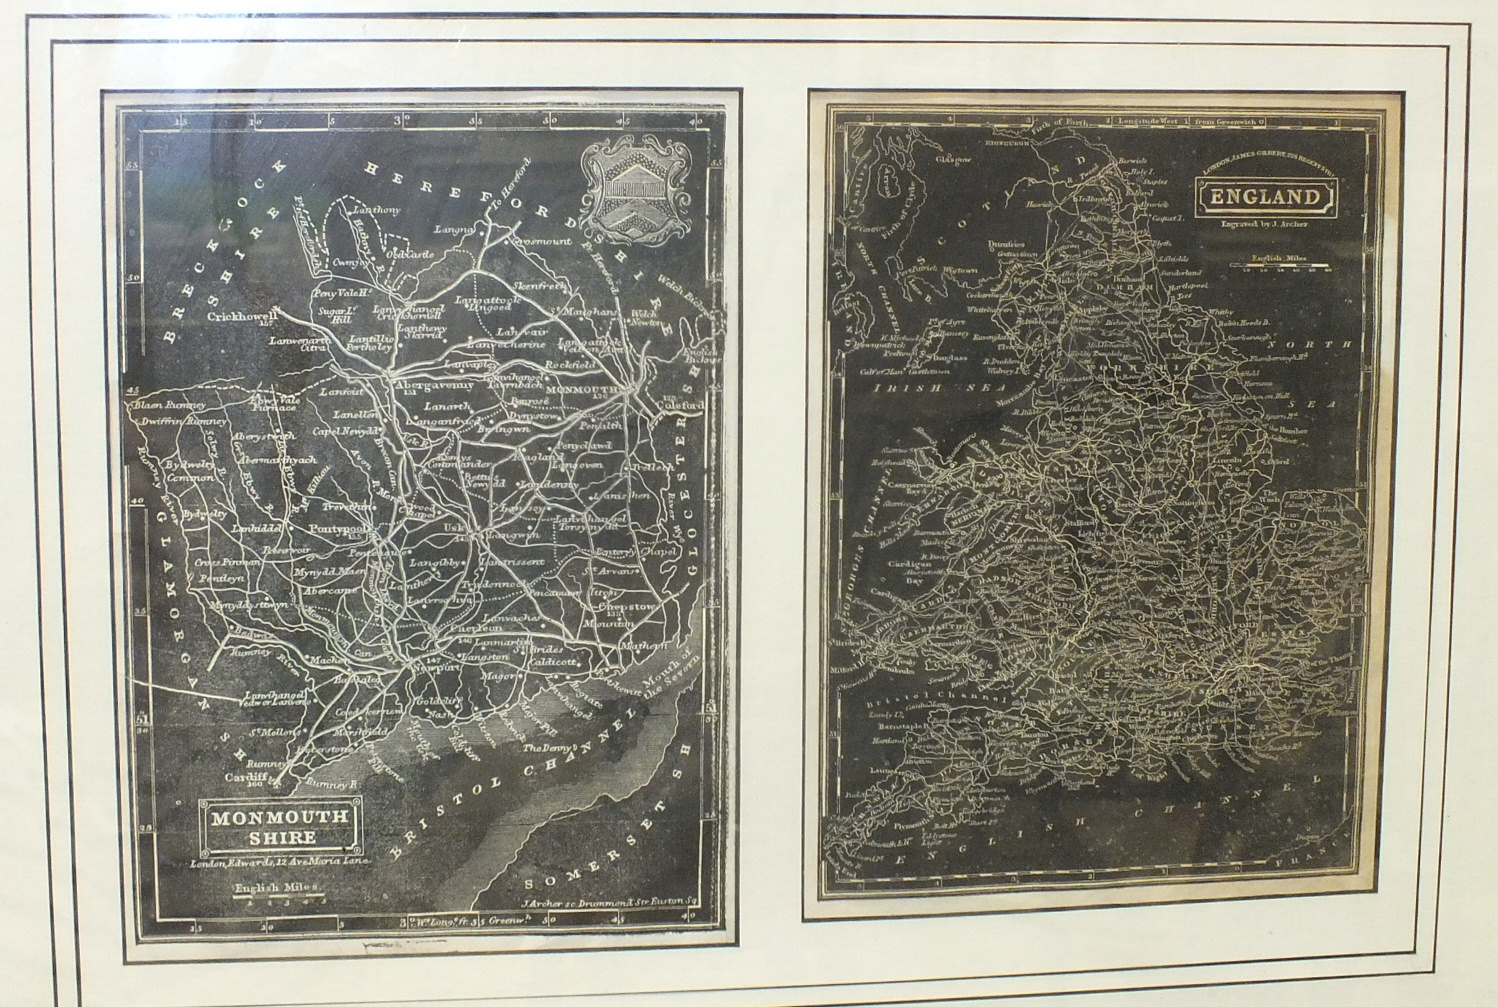 A Greenwood & Co. map of the County of Monmouth, hand-coloured, engraved Josiah Neele, published - Image 4 of 5